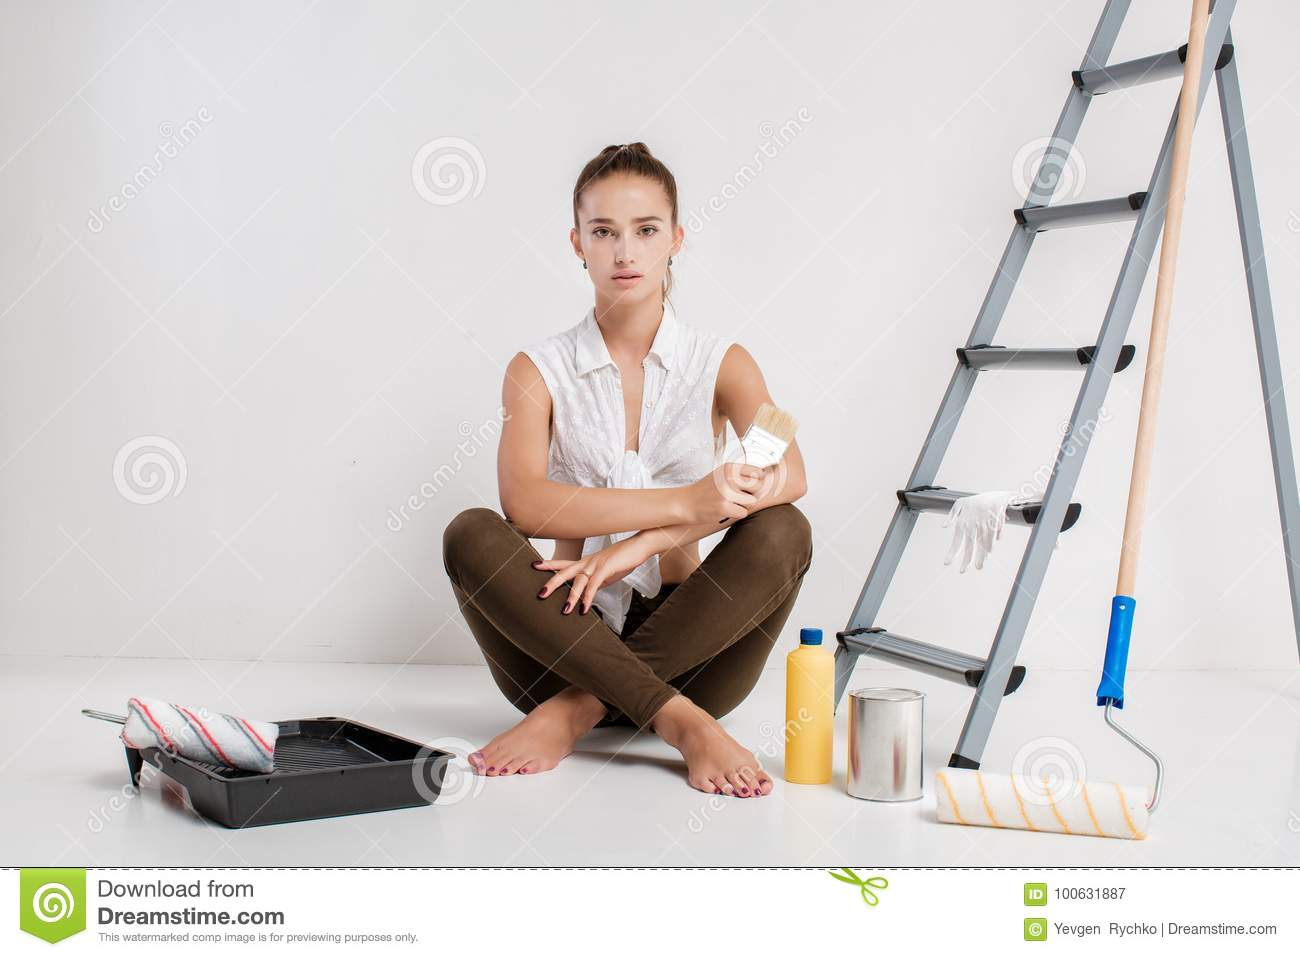 House Painter Painting Residential Home Interior Stock